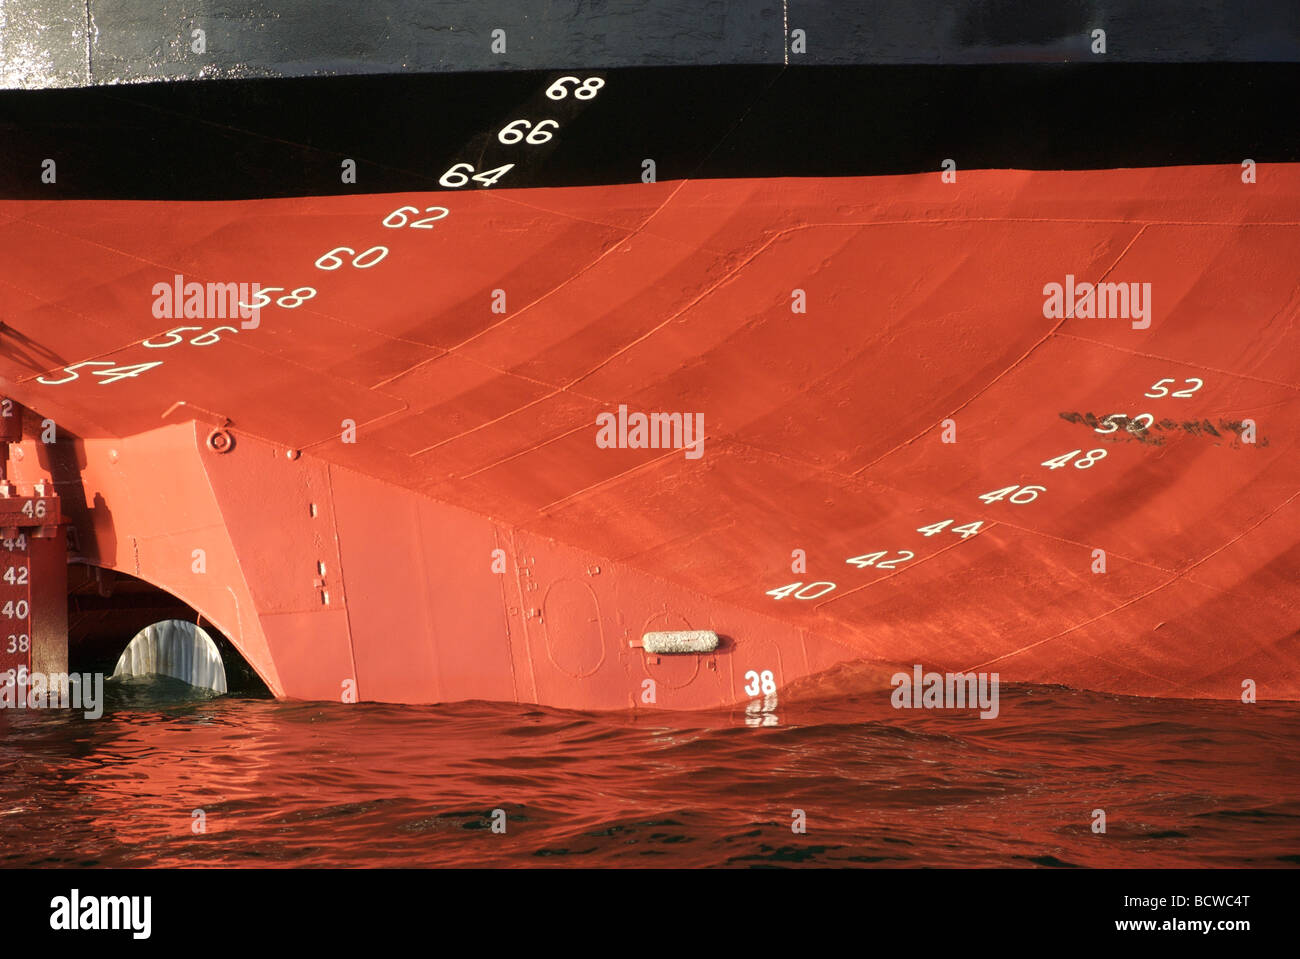 Plimsoll line numbers on the stern of Sand Weaver cargo ship, Falmouth Docks, Cornwall, UK Stock Photo